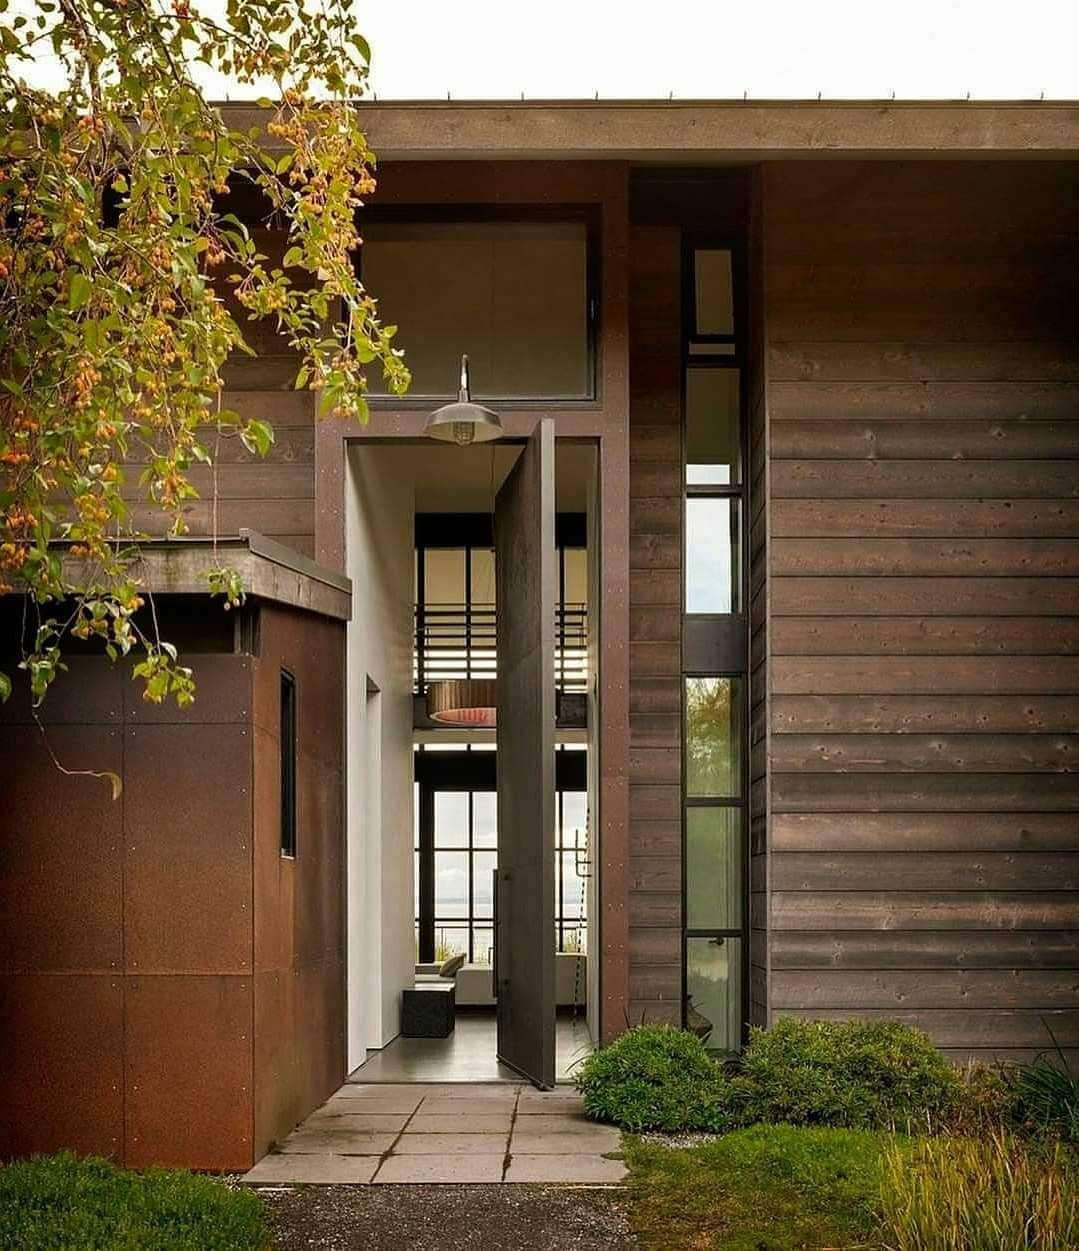 Alluring Exterior Design- Source: Olson Kundig